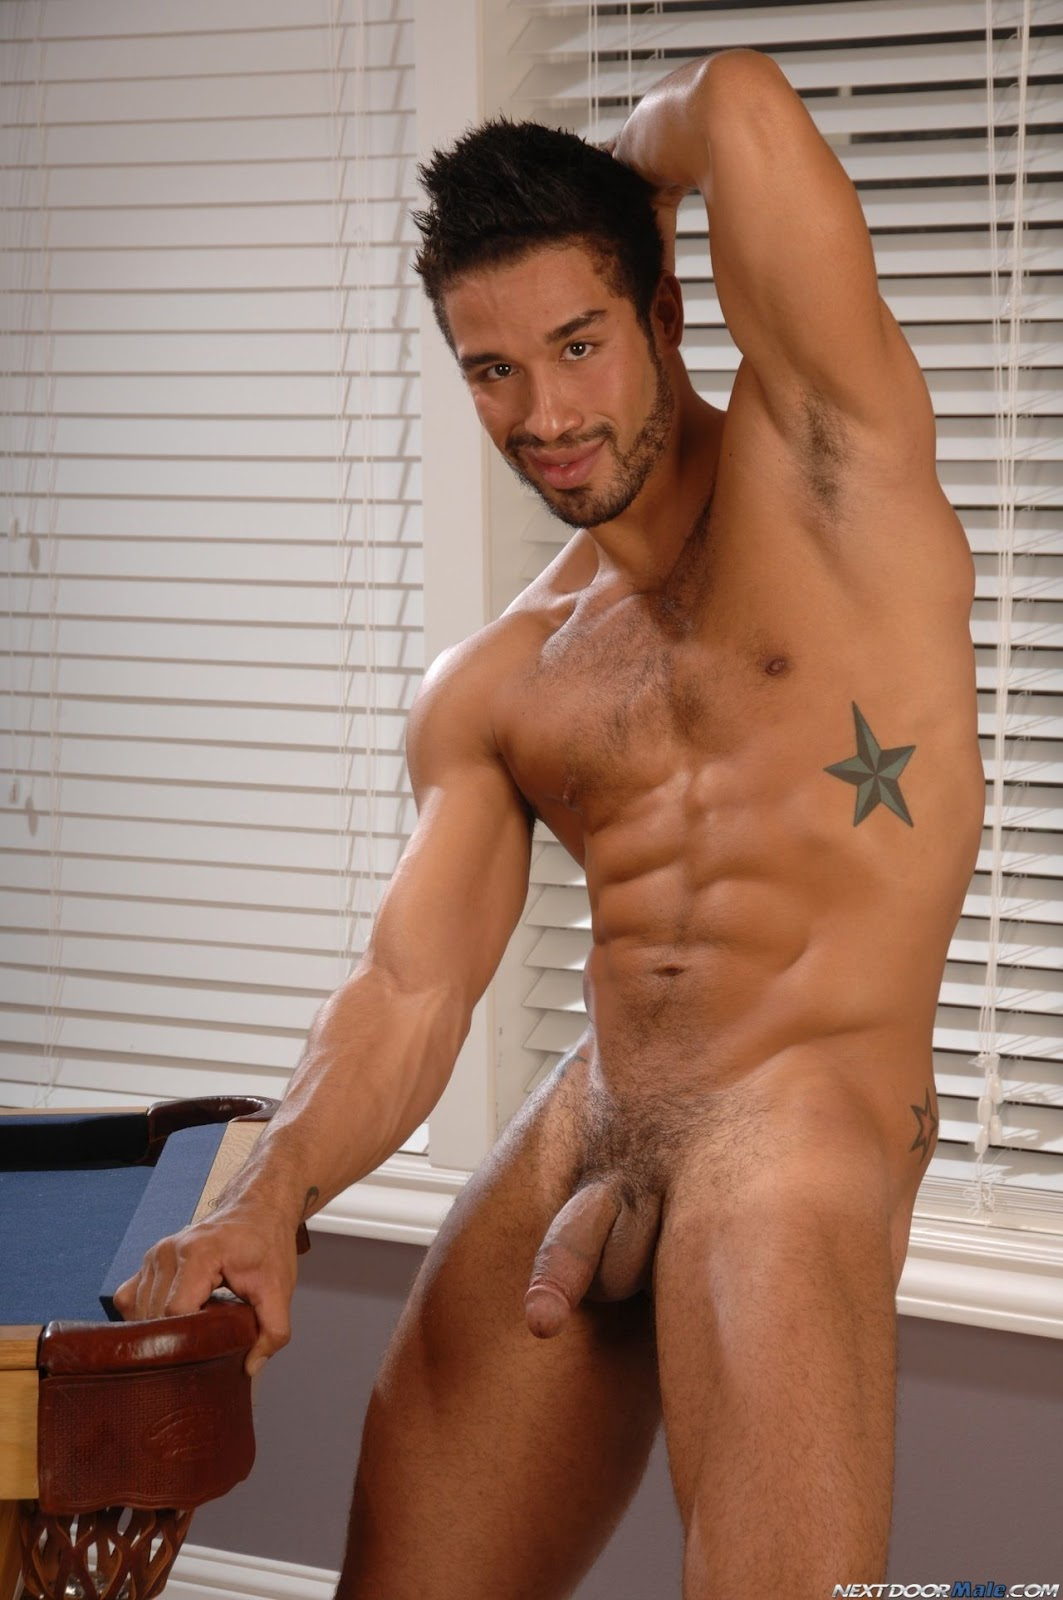 Black Latin And Hairy Hot Body